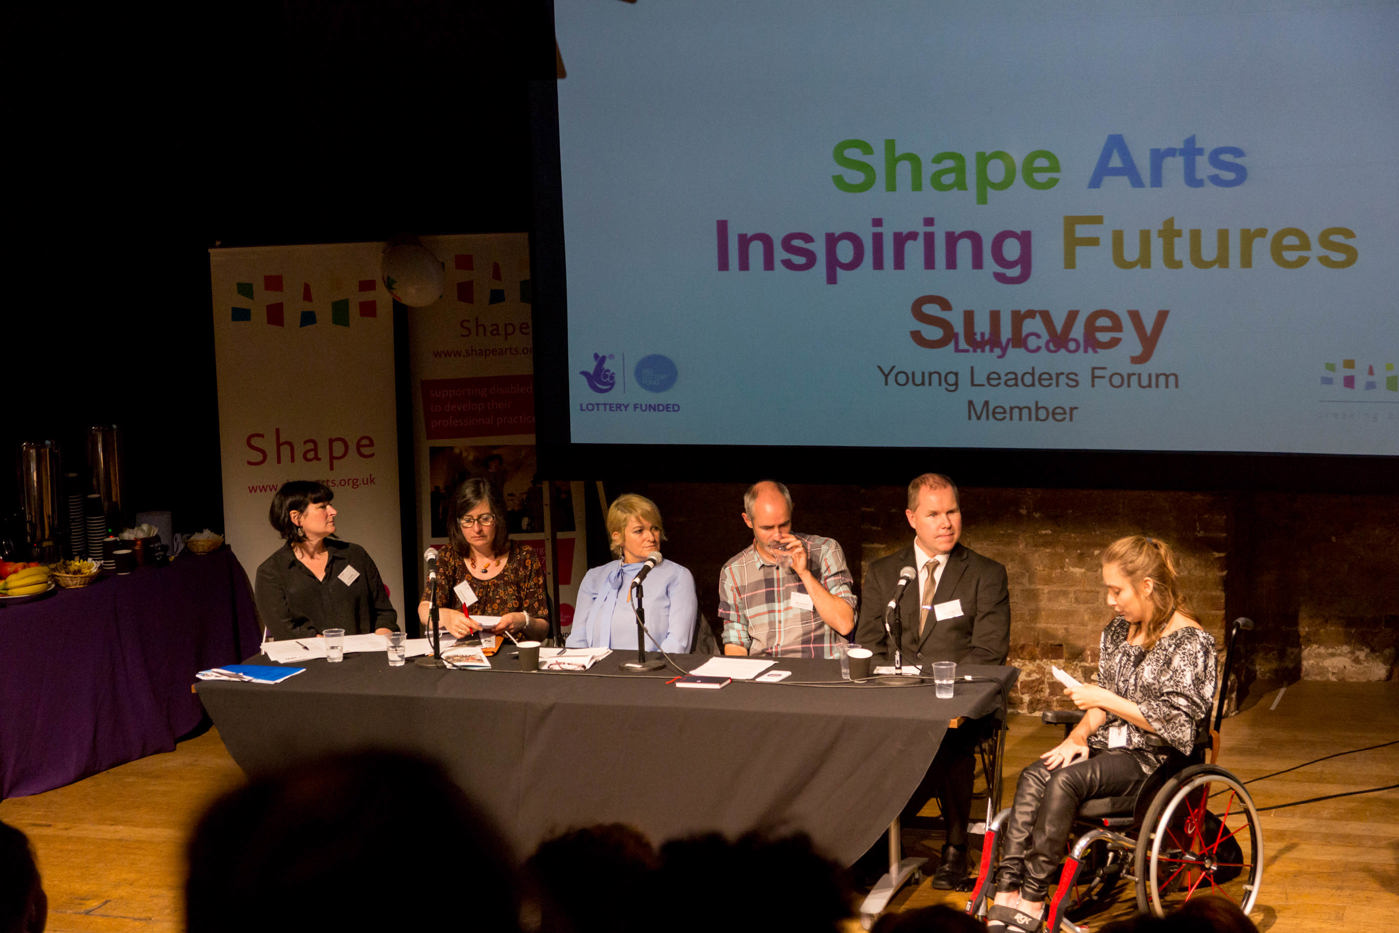 panel discussion at the Roundhouse Inspiring futures event